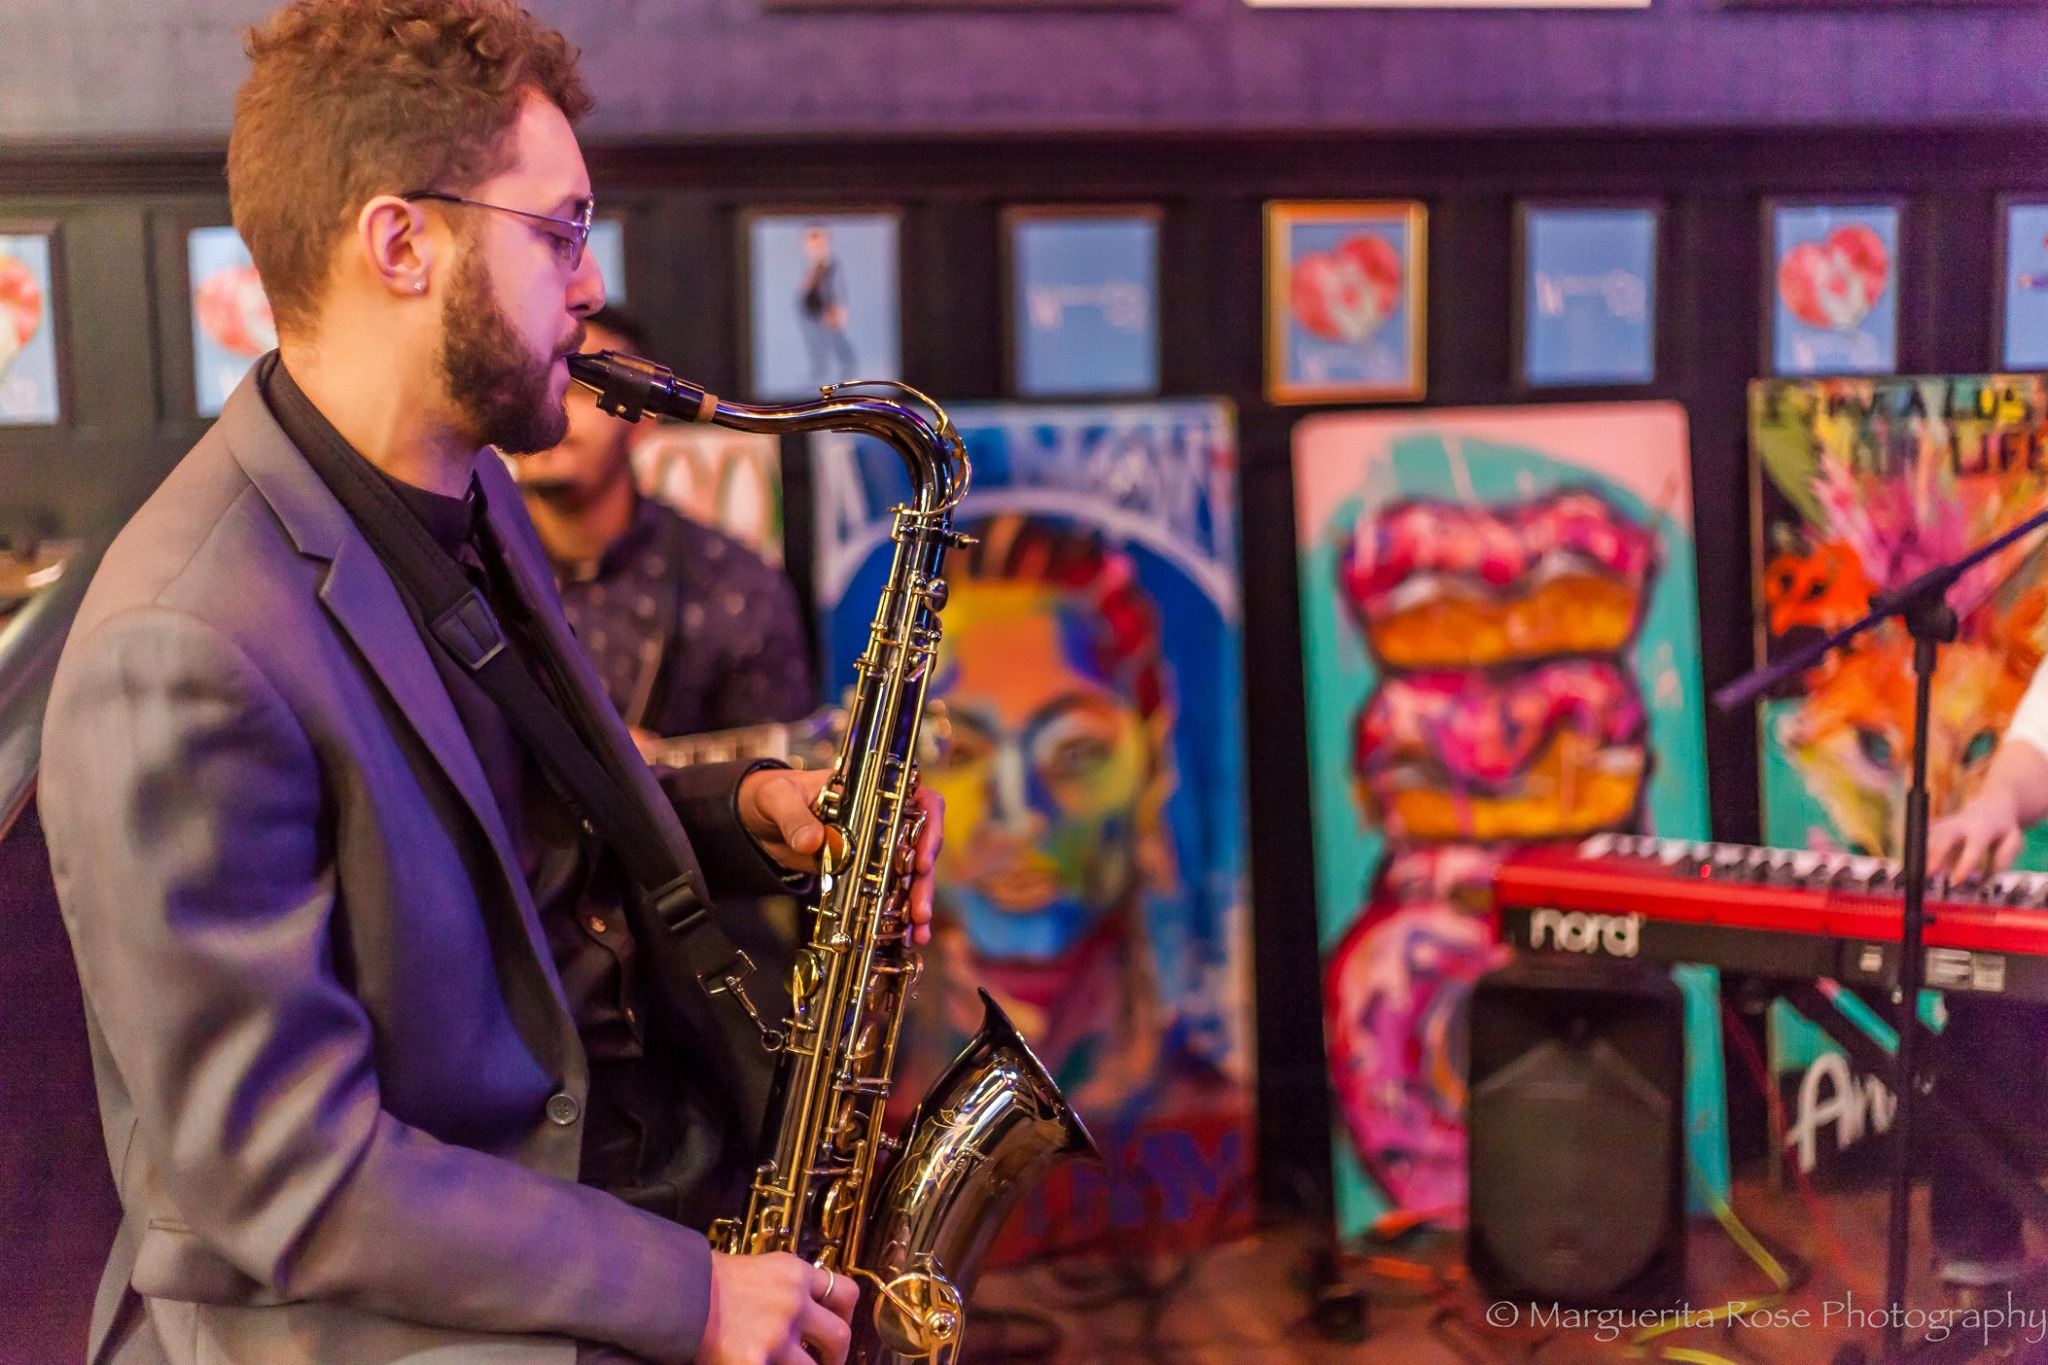 A man wearing glasses playing a saxophone with paintings and a keyboard in the background.